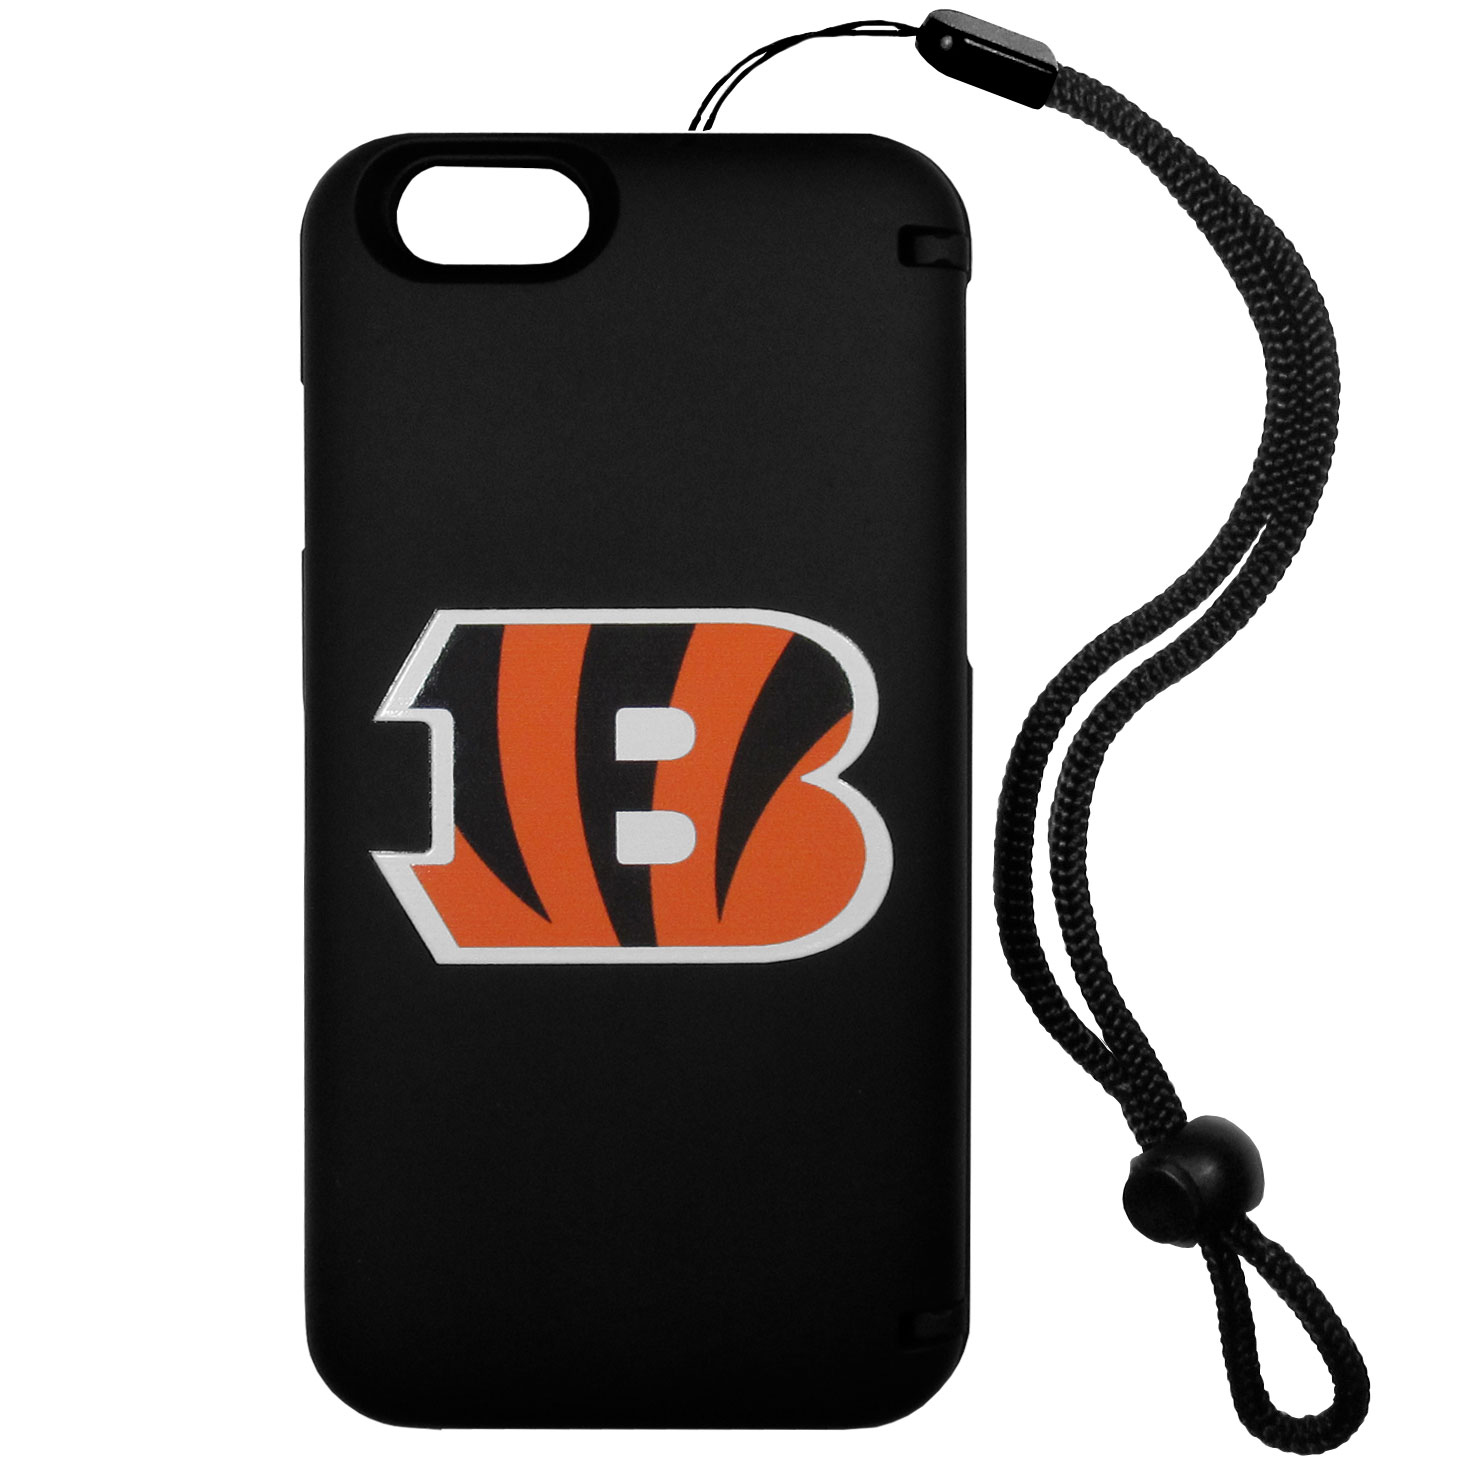 Cincinnati Bengals iPhone 6 Plus Everything Case - This case really does have everything but the kitchen sink! The hidden compartment lets you keep your cards, money and tickets to the big game safe and secure and has a compact mirror so you can make sure your game face is ready to go. It also comes with a kickstand to make chatting and watching videos a breeze. The wrist strap allows you to travel with ease with your everything case. If that's not enough, it also comes with the Cincinnati Bengals logo printed in expert detail on the front.